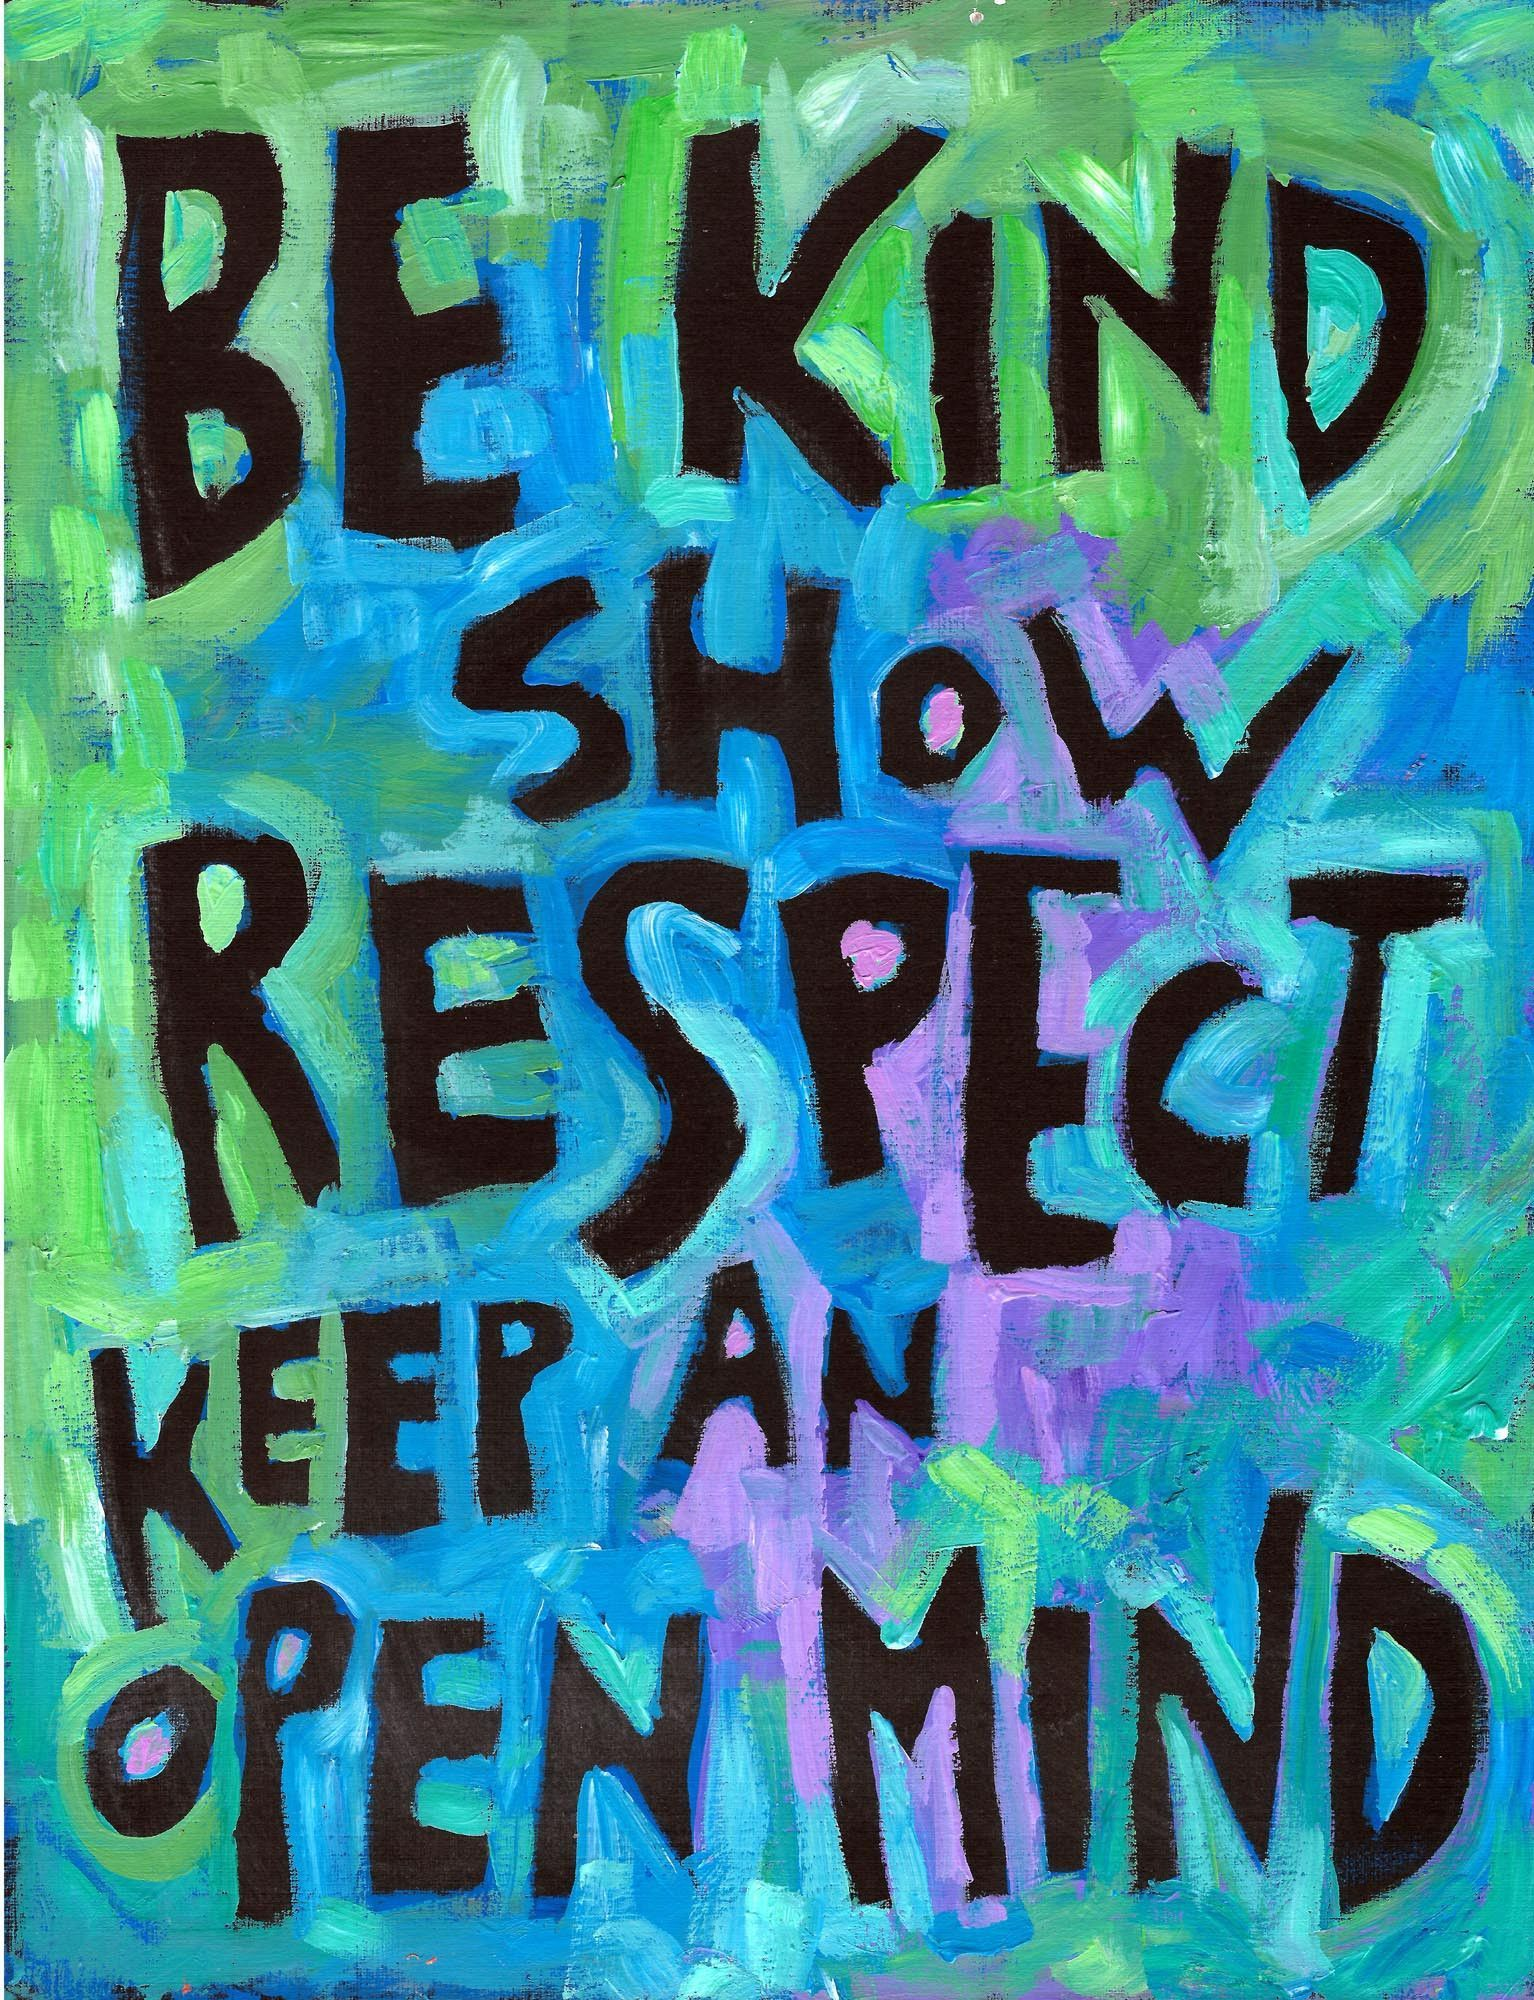 We Now Offer 3 Sizes Standard 11 X 14 Large 16 X 21 Extra Large 23 X 30 Sorry Not All Image Kindness Quotes Respect Quotes Teacher Inspiration